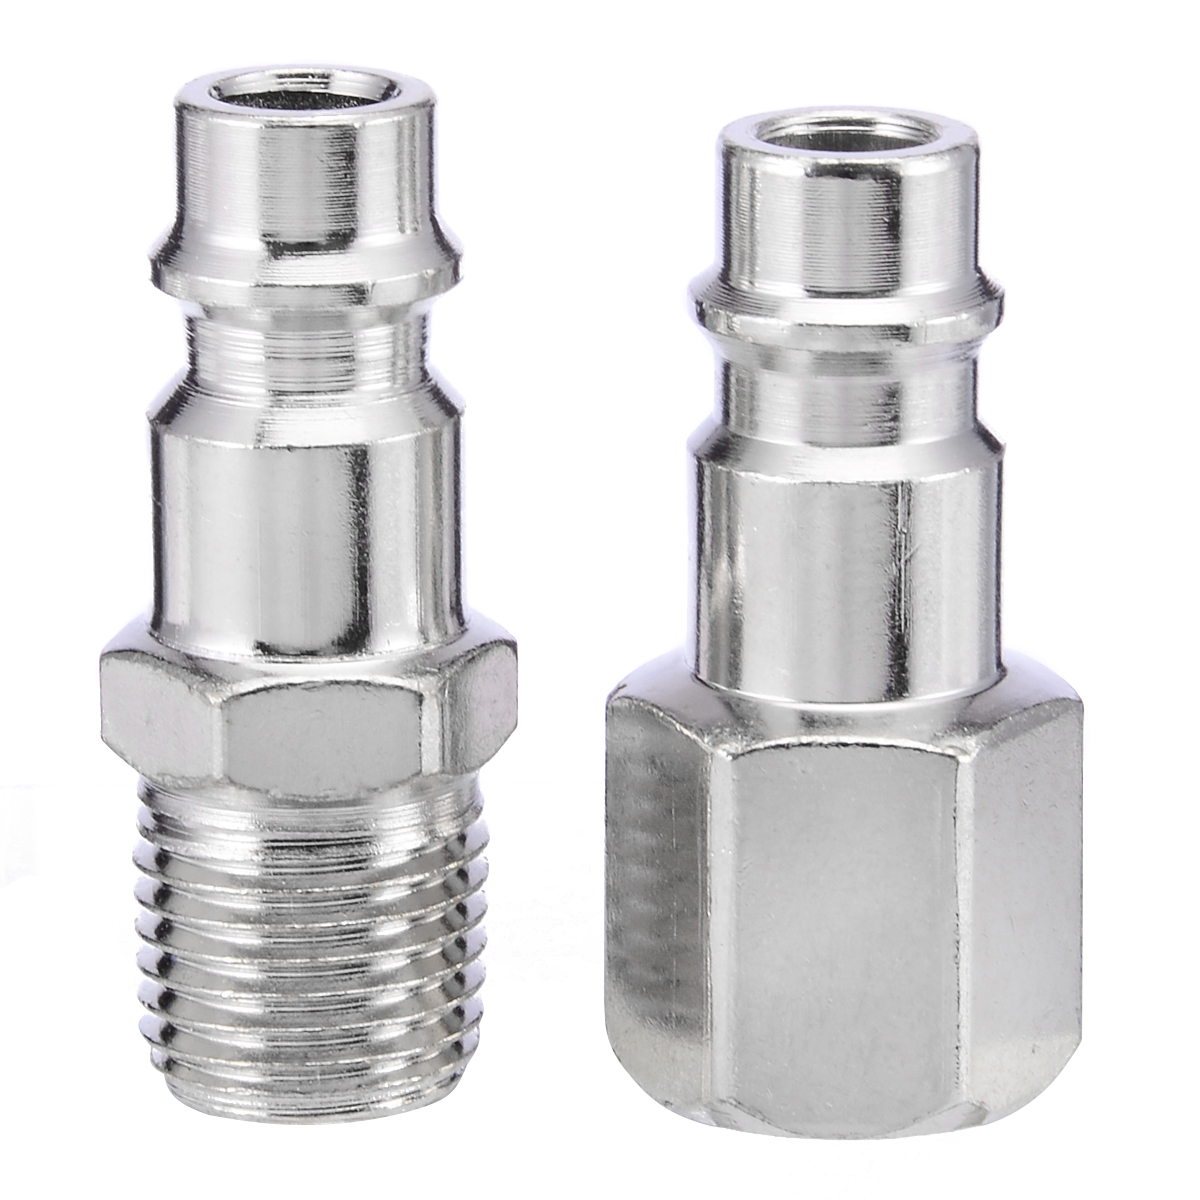 5pcs Mayitr Euro Air Line Hose Compressor Connector Quick Couplers Set Male/Female 1/4 BSP Thread For Hardware Accessories 2pcs air line hose connector euro female quick release fitting with 1 4 bsp male thread mayitr for home tool accessories